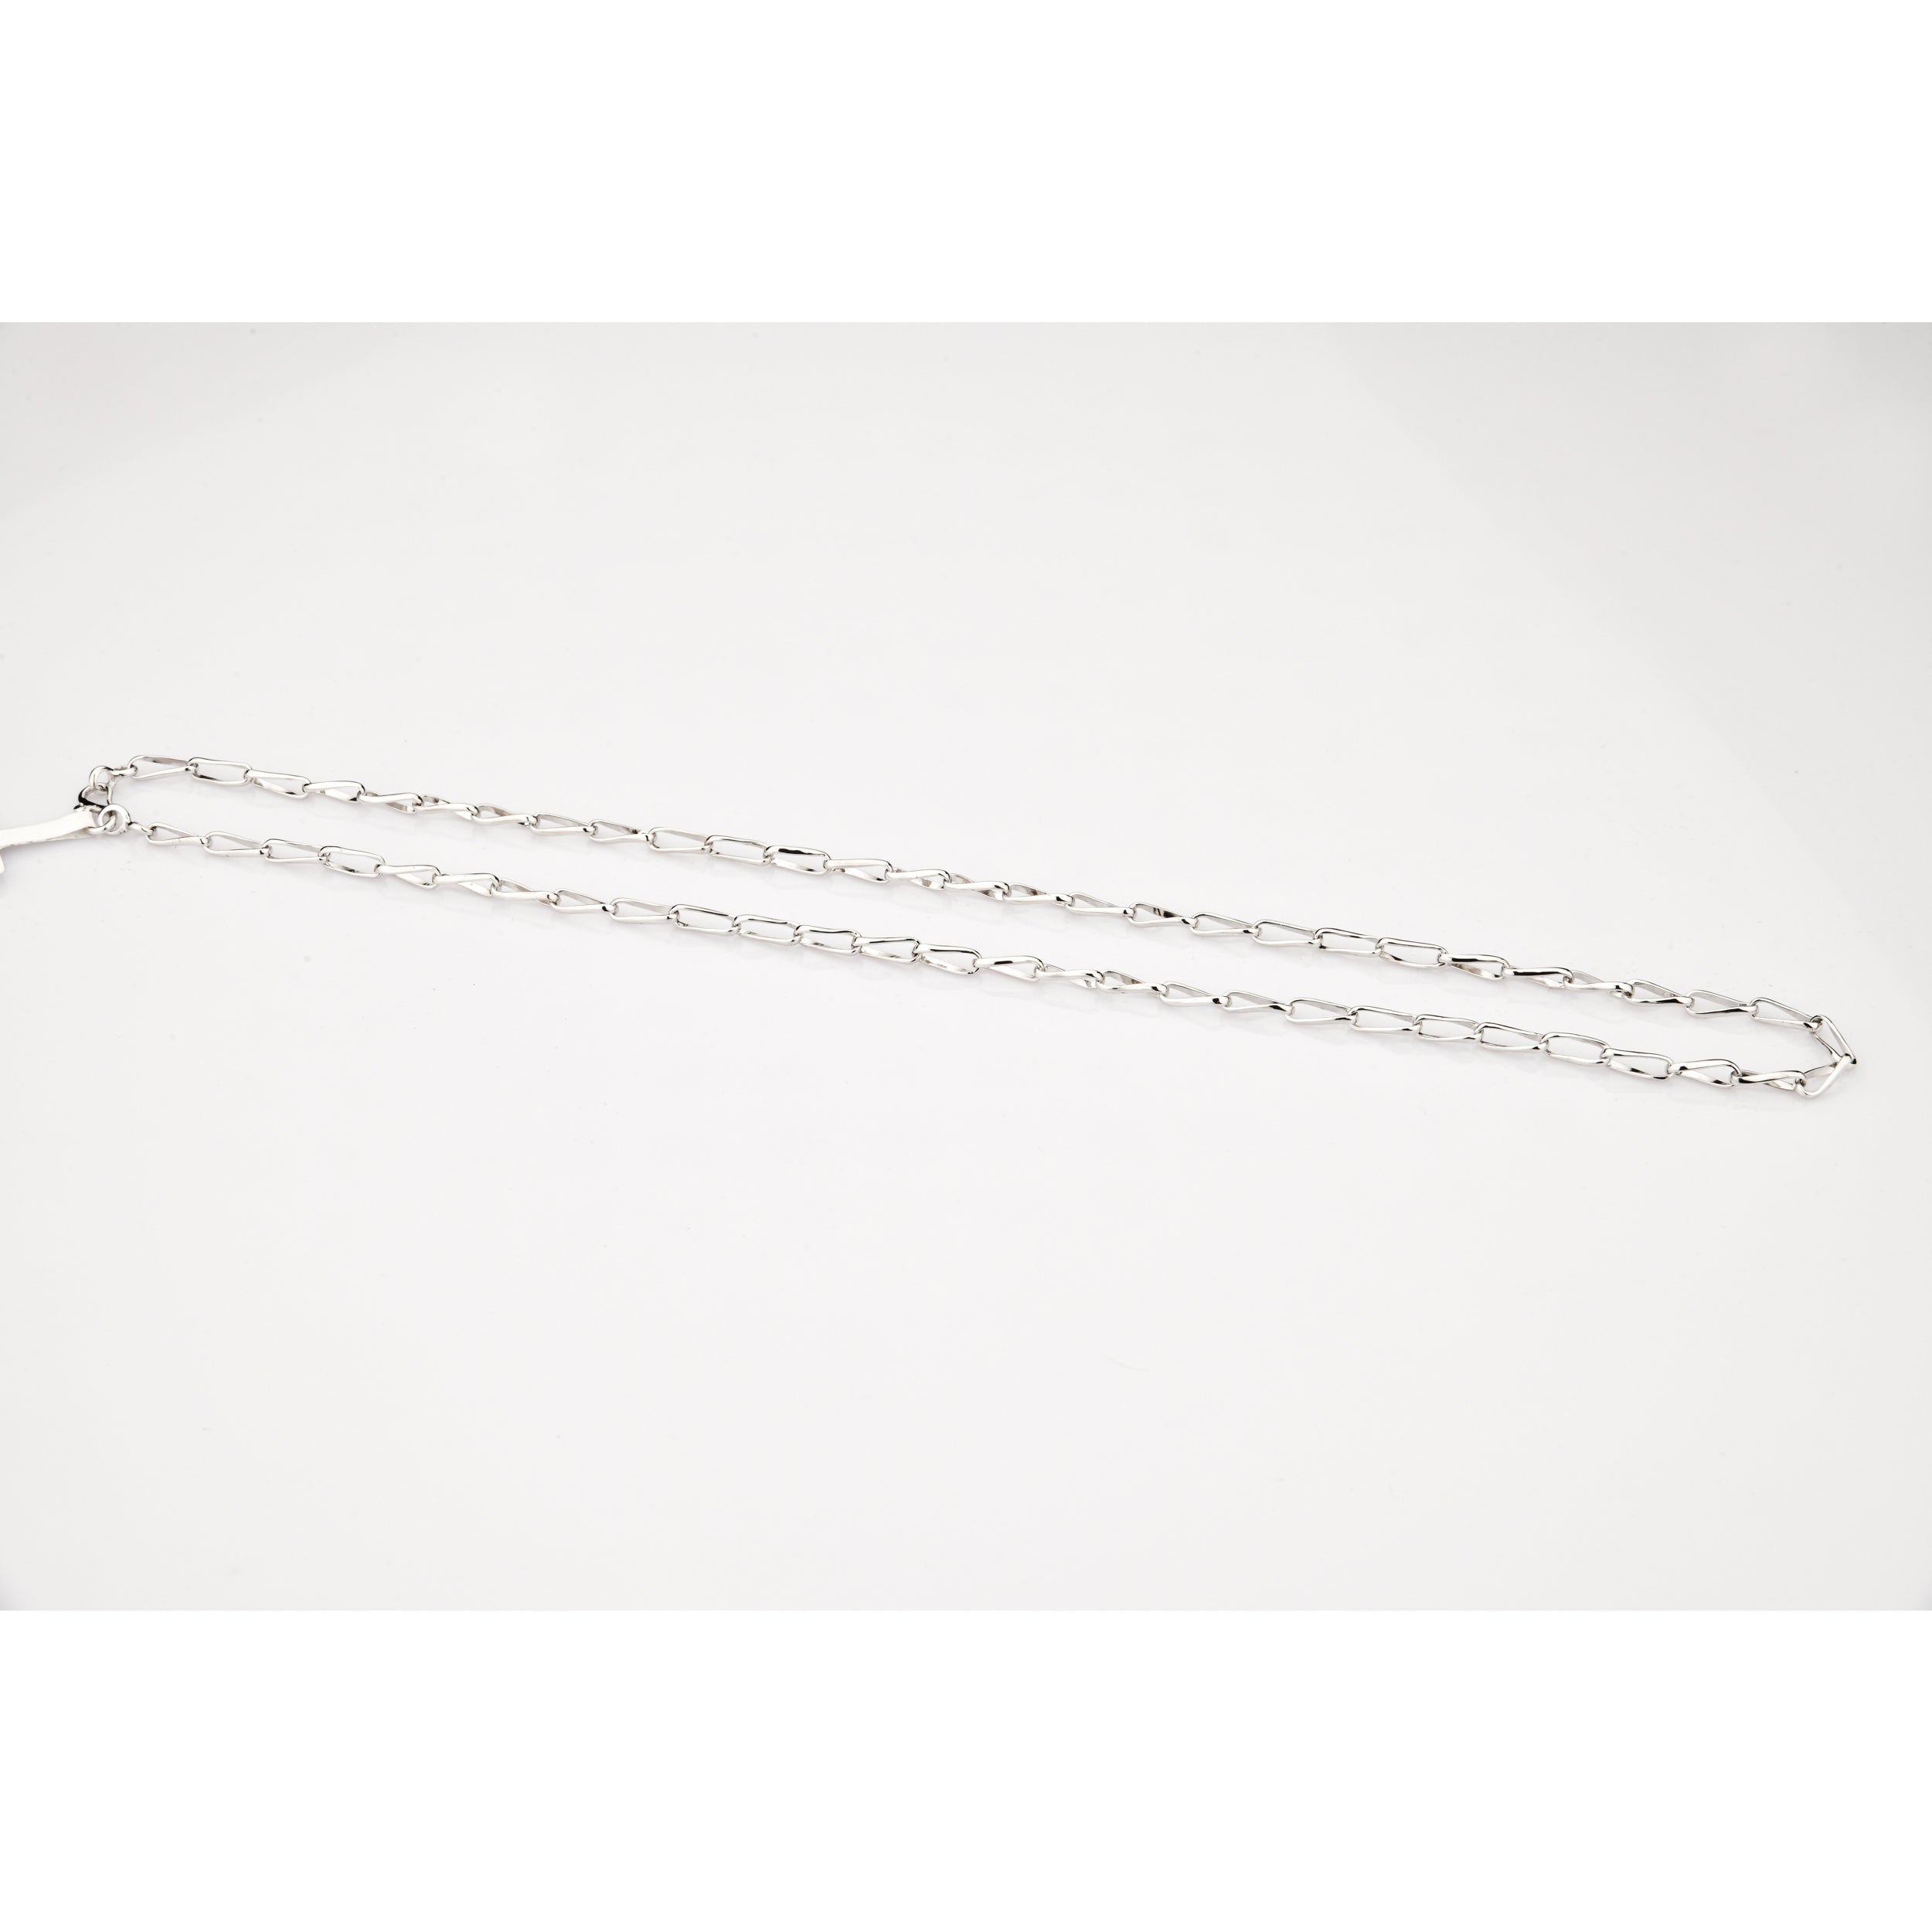 Designer Platinum Chain with Curved Link JL PT 781